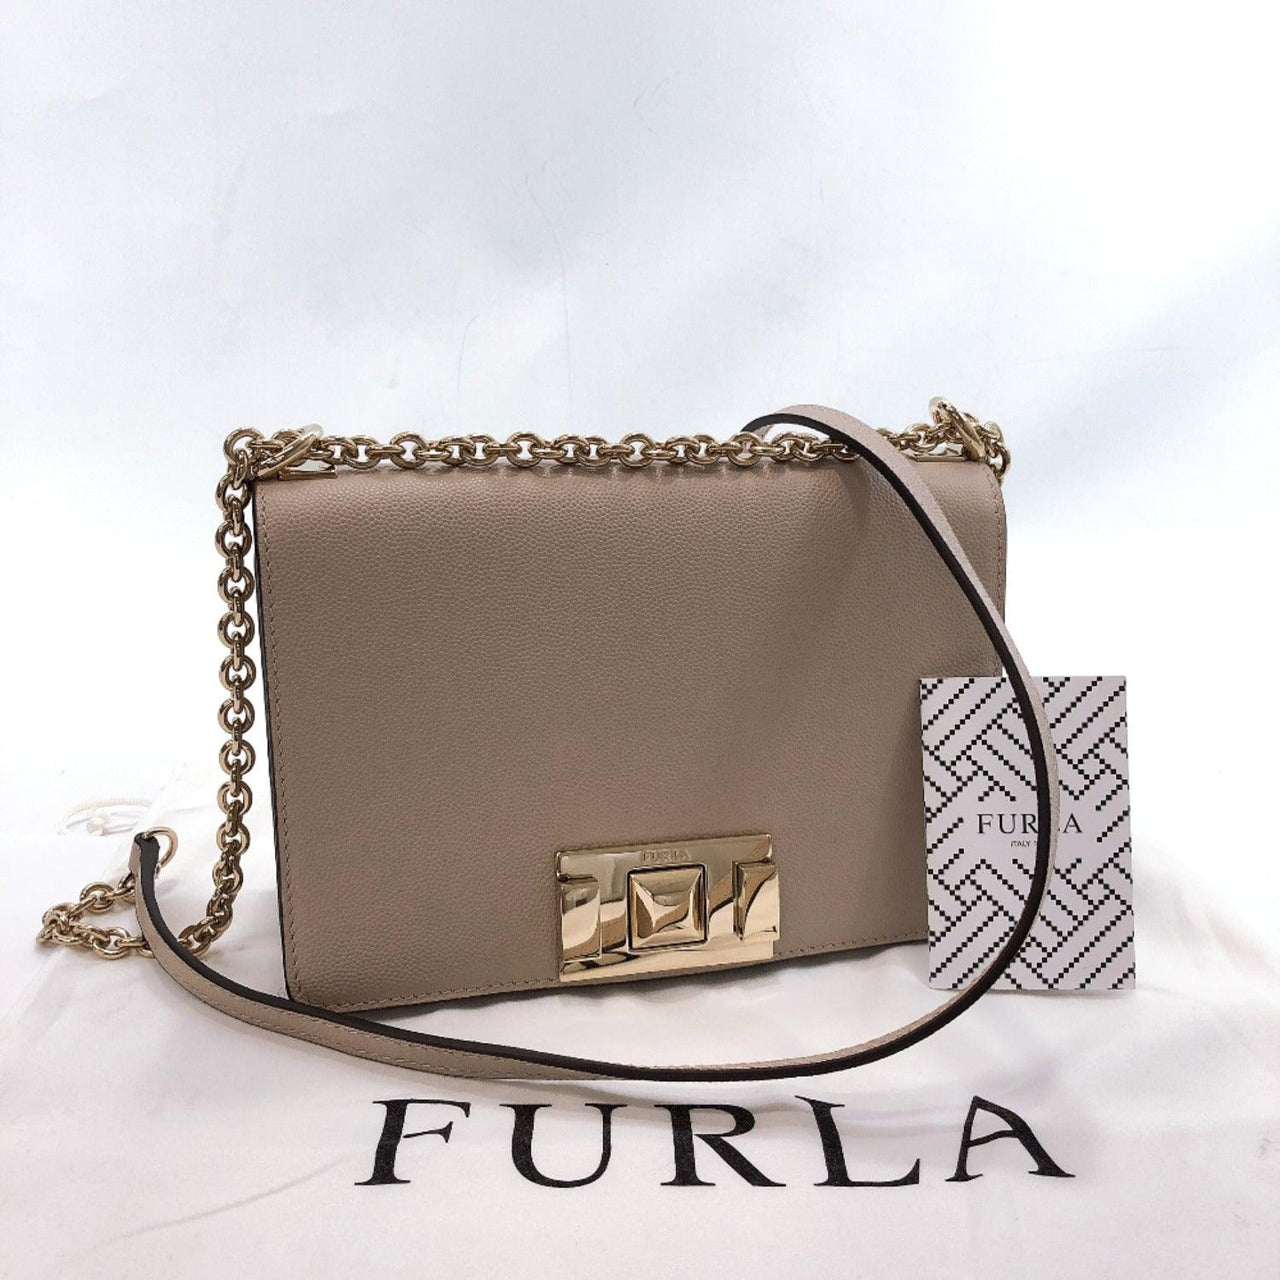 Furla Shoulder Bag Mimi Chain leather beige Women New